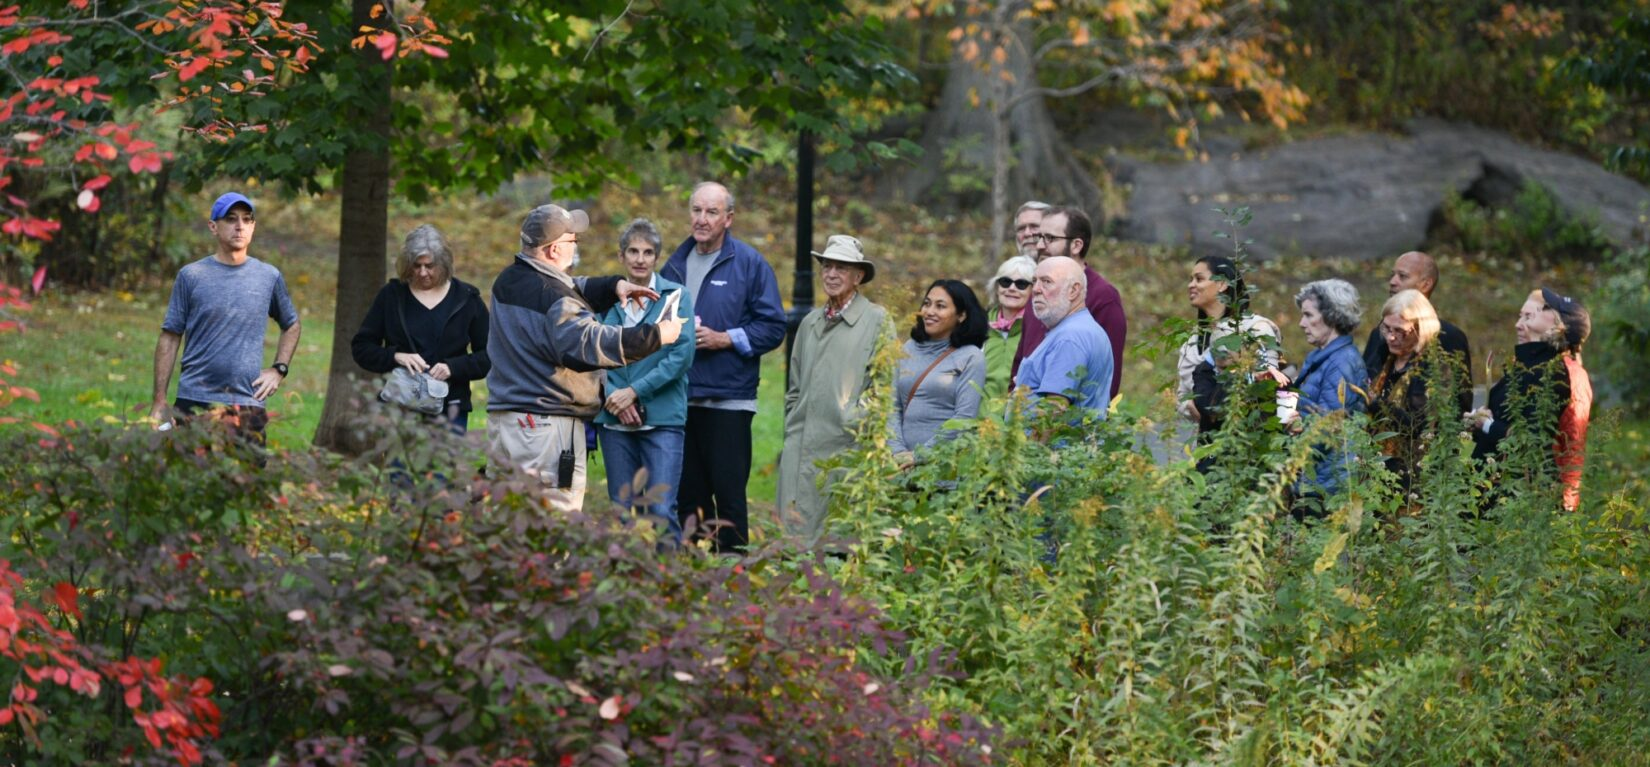 A Conservancy staff member lectures a tour of parkgoers in early autumn